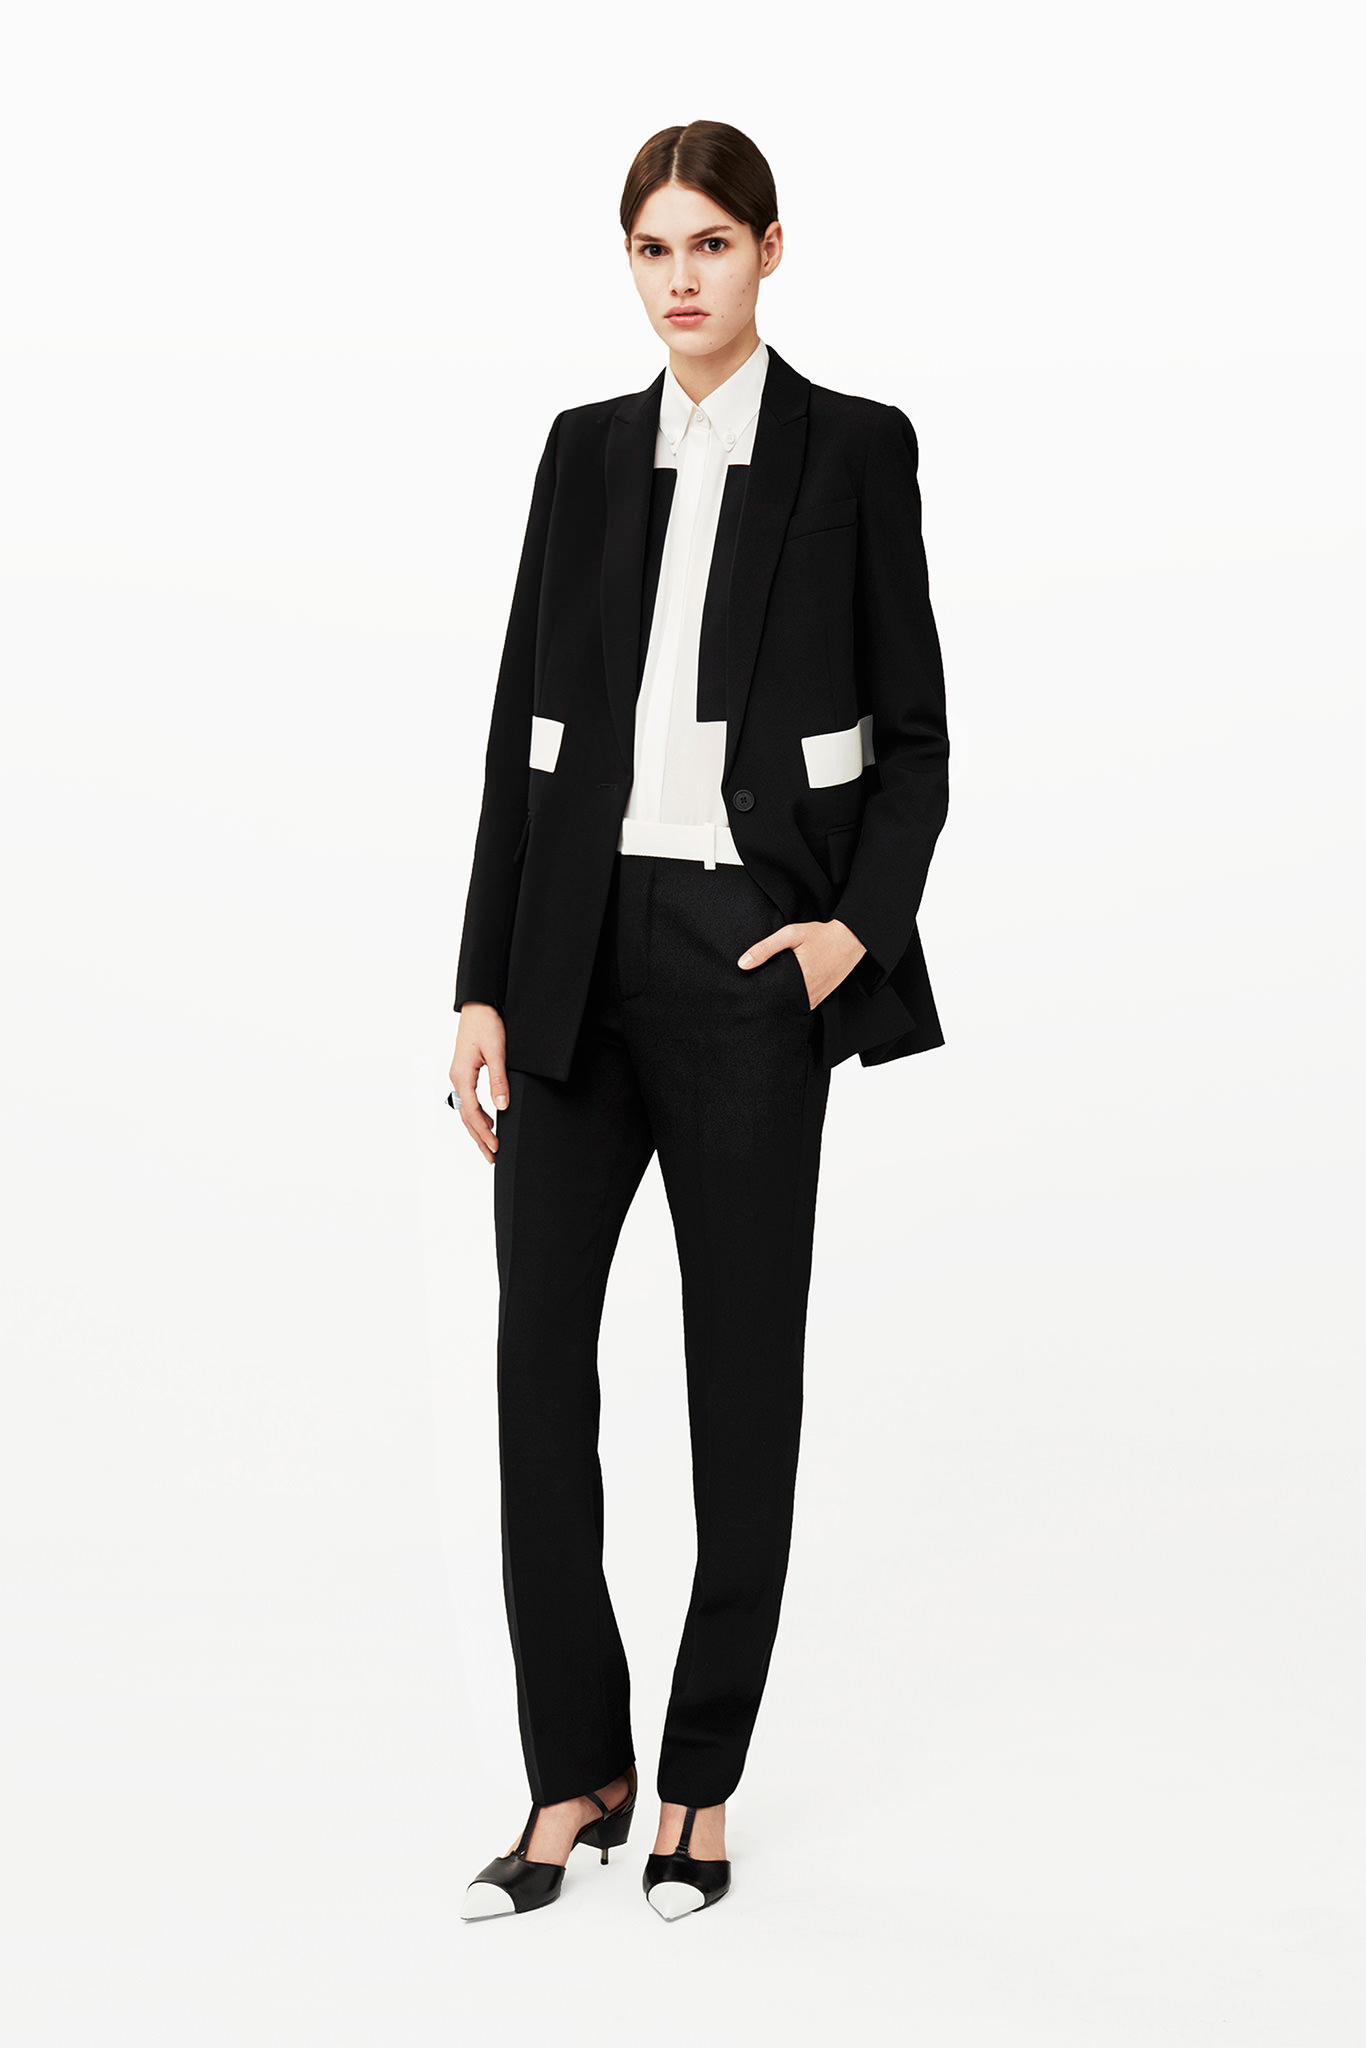 2015-2016-Work-Business-Appropriate-Pantsuits-5